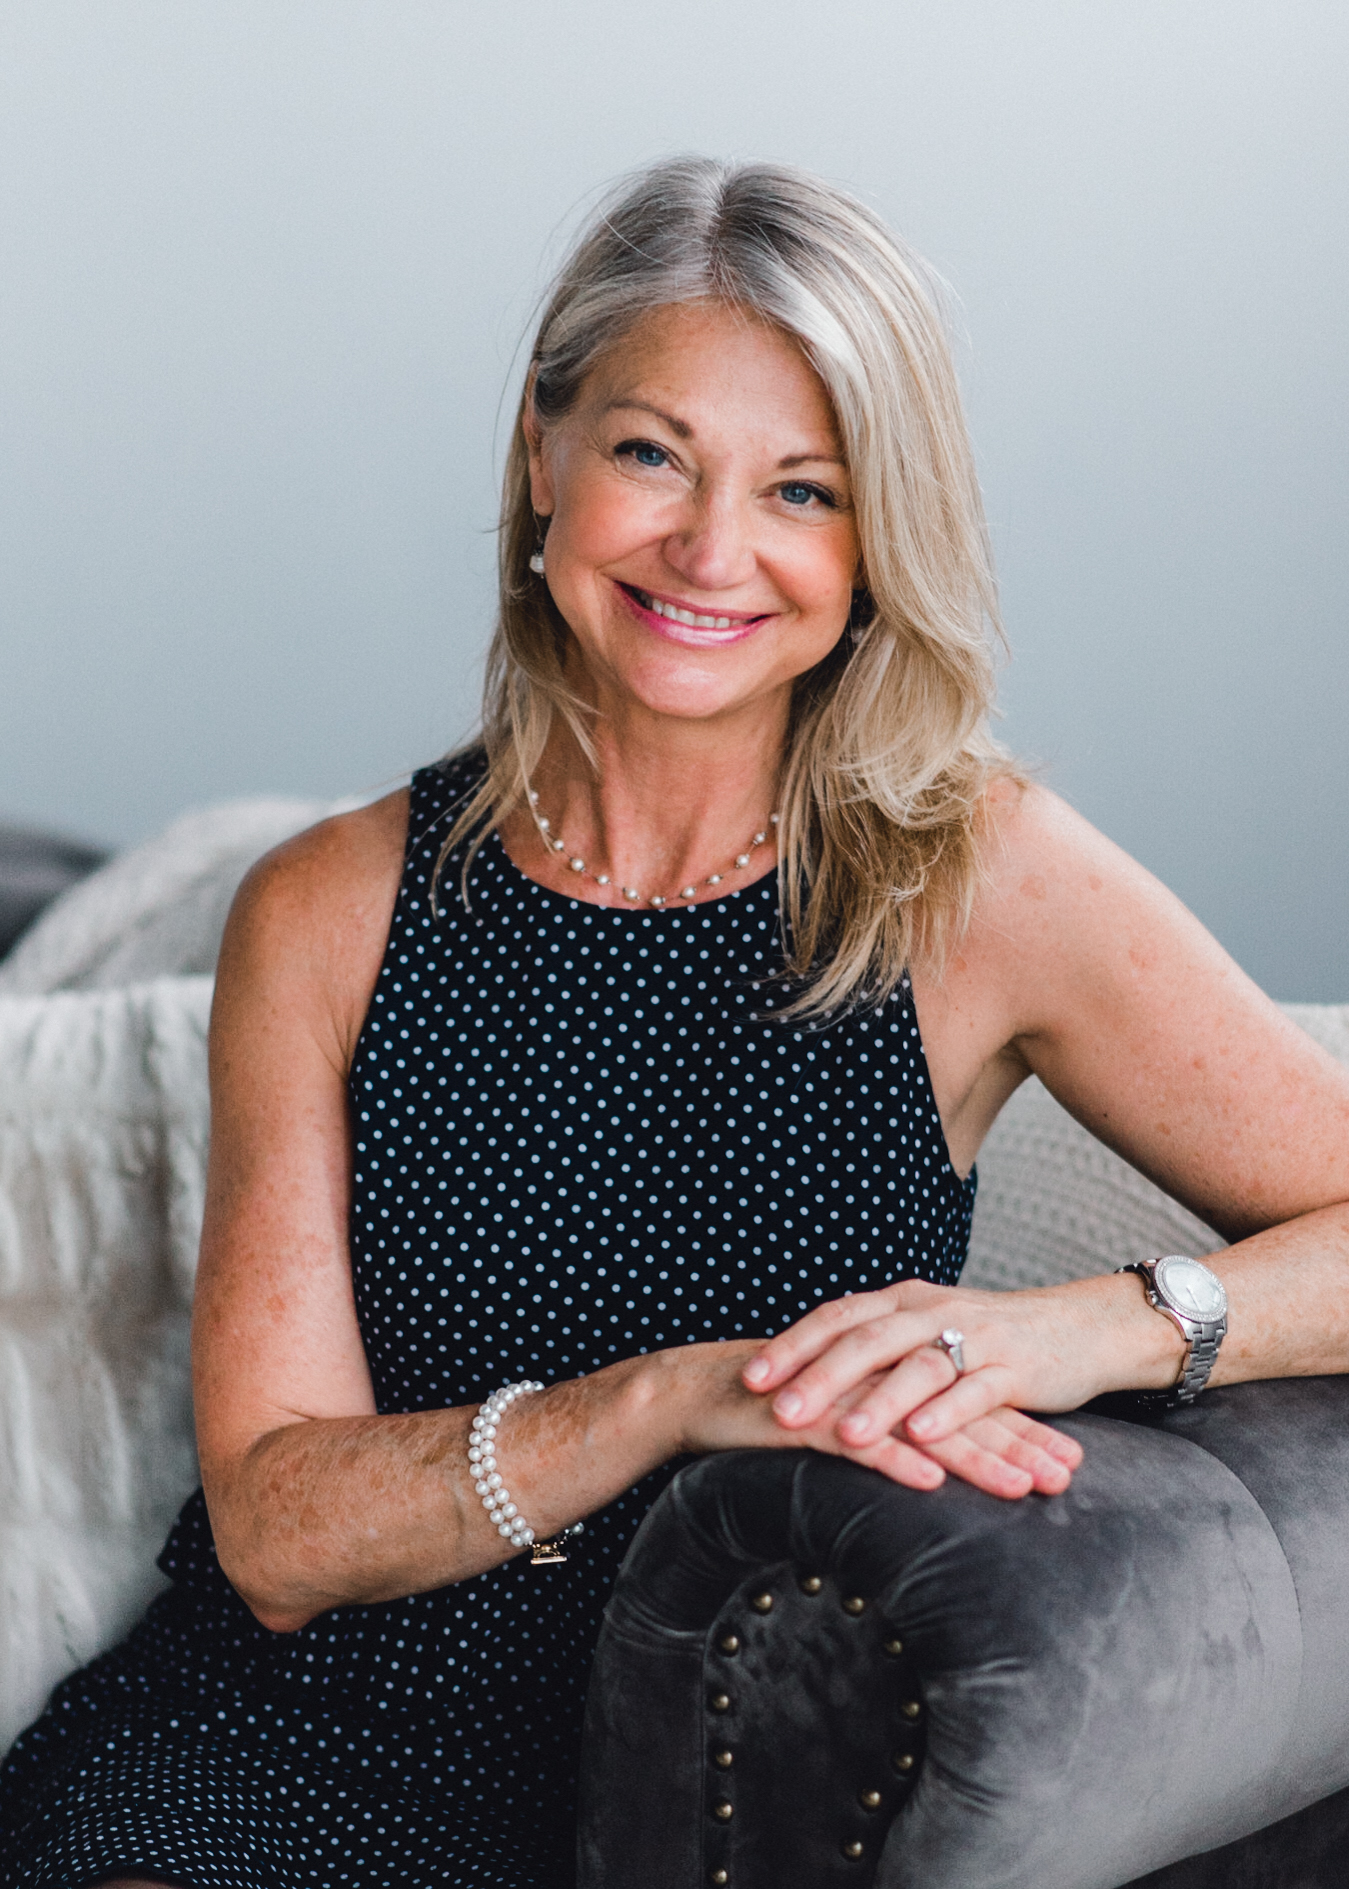 Your Realtor: Rochelle Johnson - Real estate is more than a profession to me. For the past 28+ years I have enjoyed matching people, like you, with the right homes, as well as assisting them sell their existing home. I have built my business on referrals by treating everyone with the utmost respect and professionalism.Learn More >>